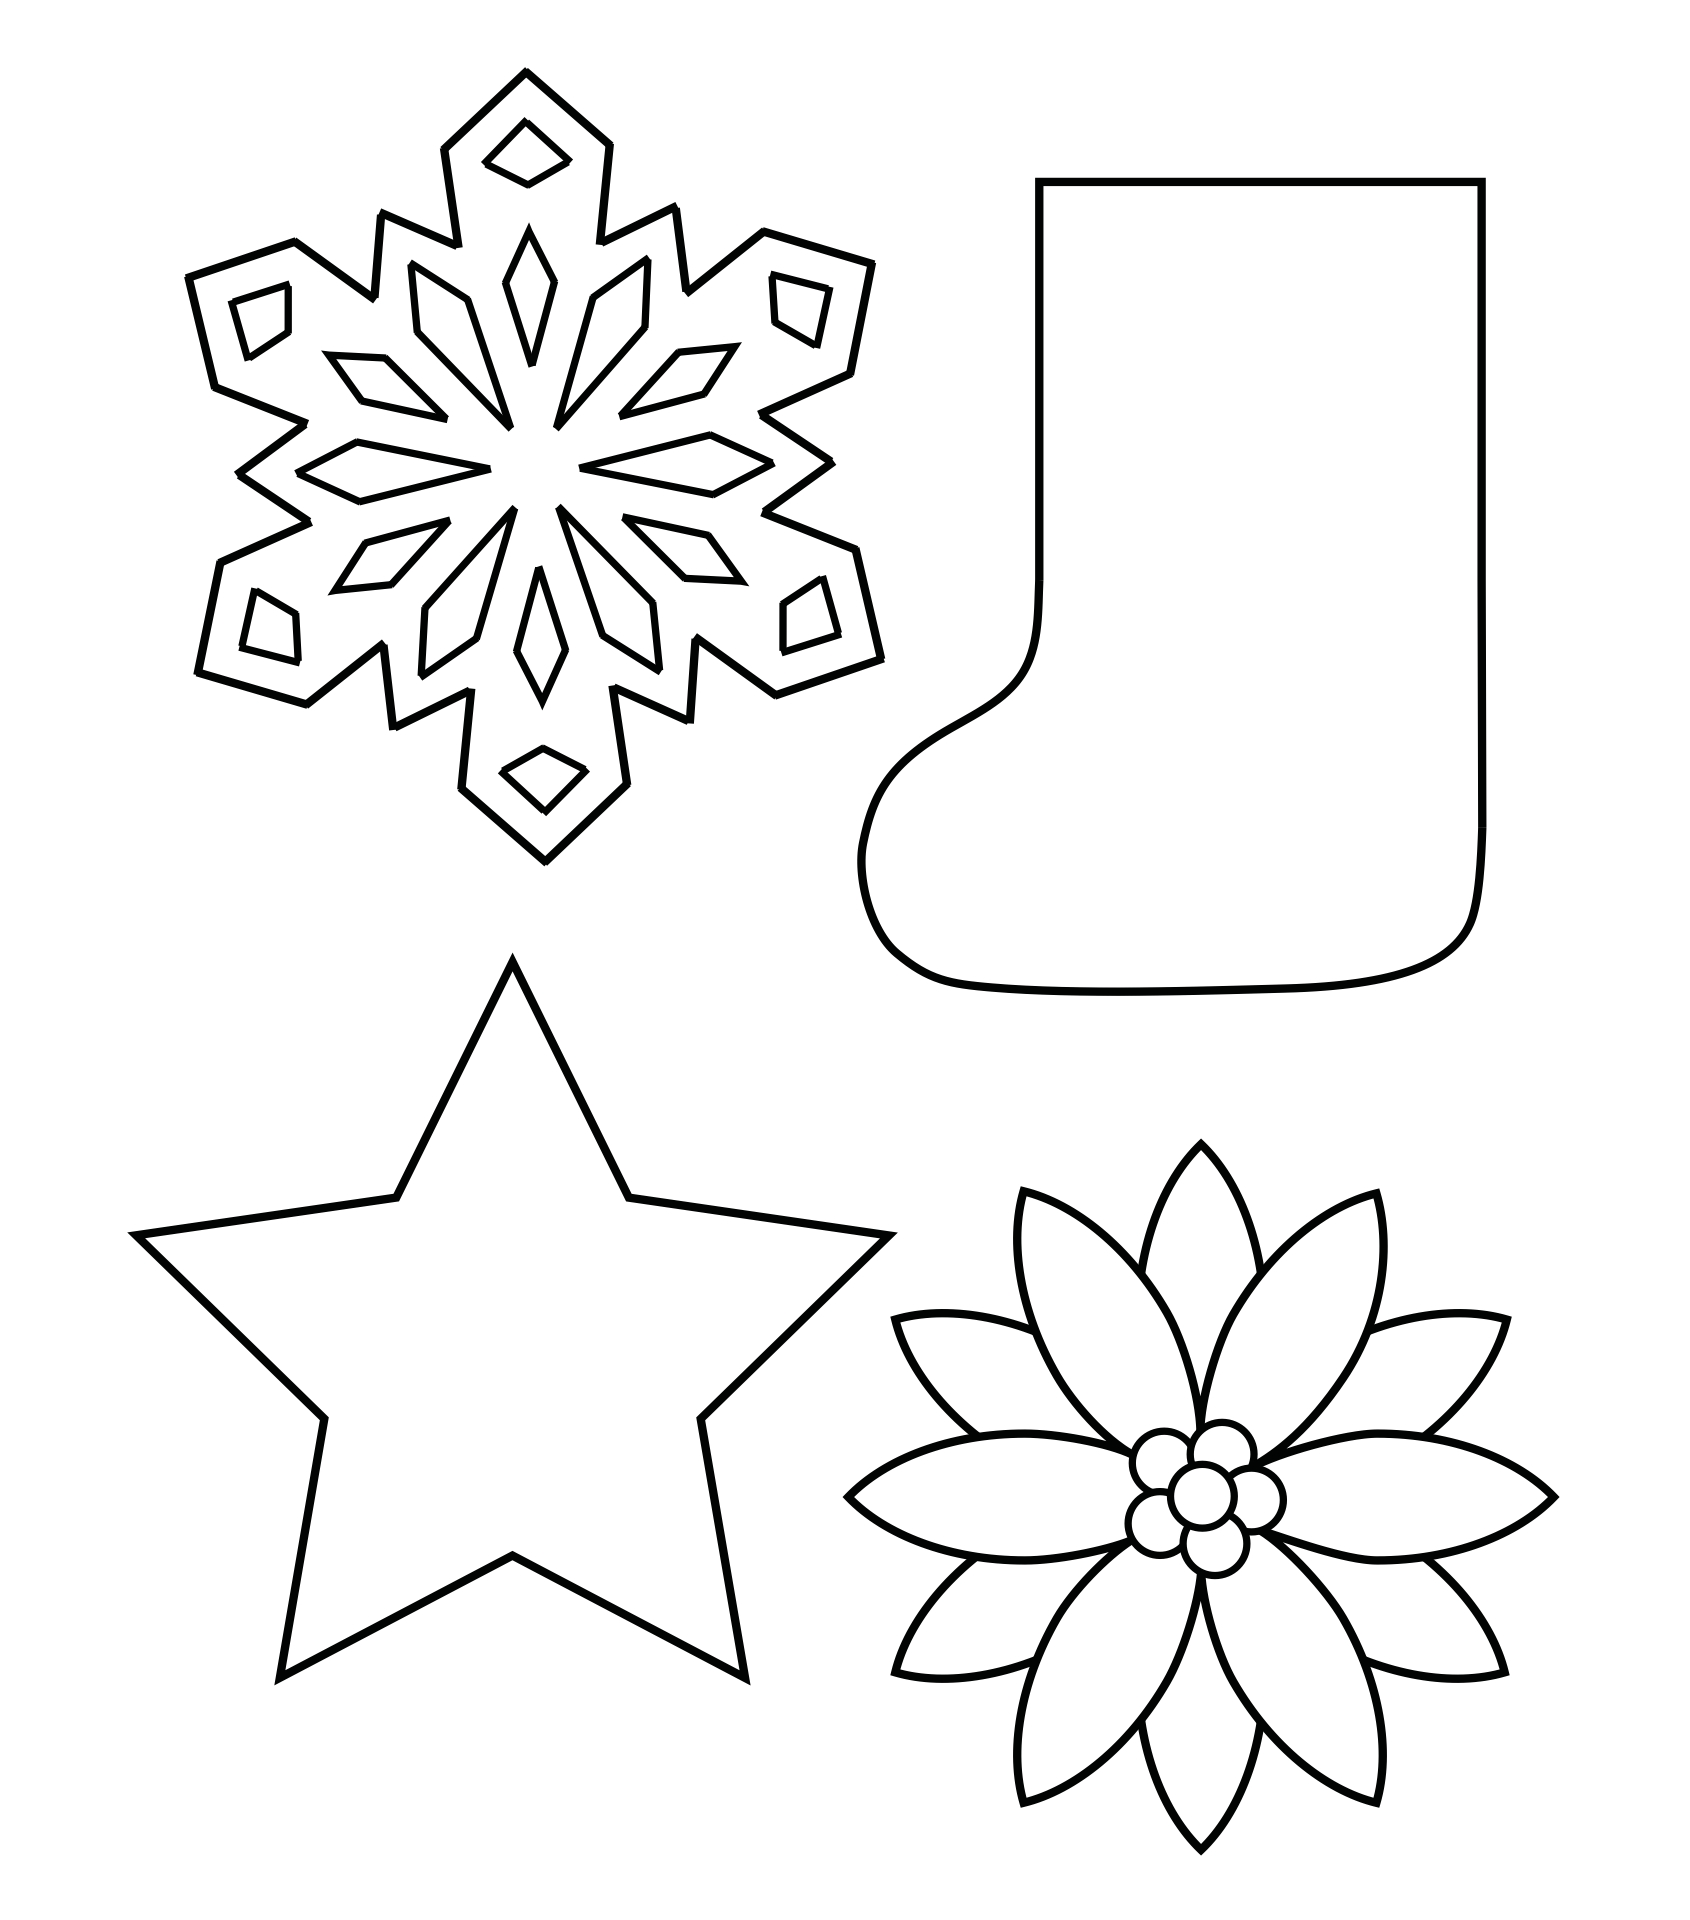 Christmas Wreath Coloring Page Shapes Worksheet